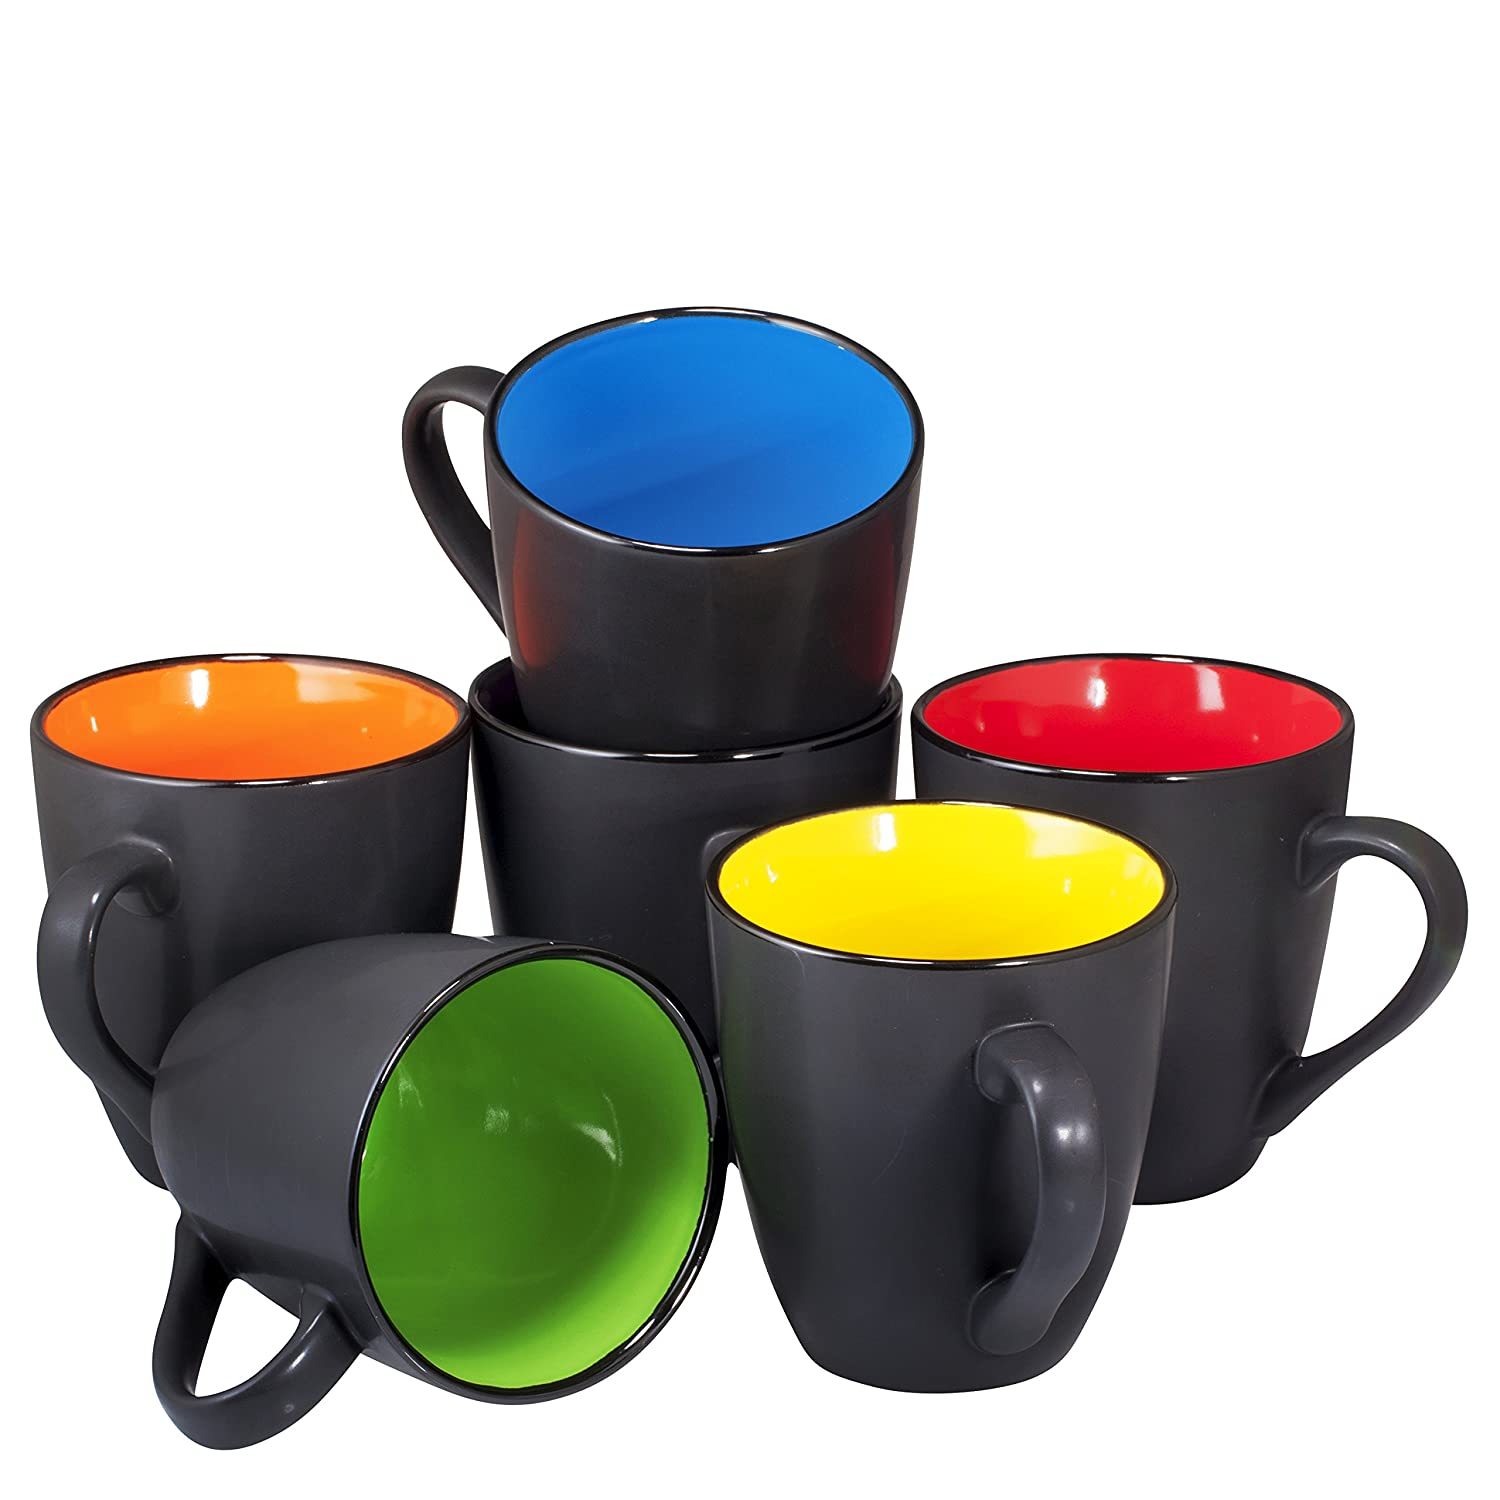 Coffee Mug Set Set of 6 Large-sized 16 Ounce Ceramic Coffee Mugs Restaurant Coffee Mugs By Bruntmor Matte Black